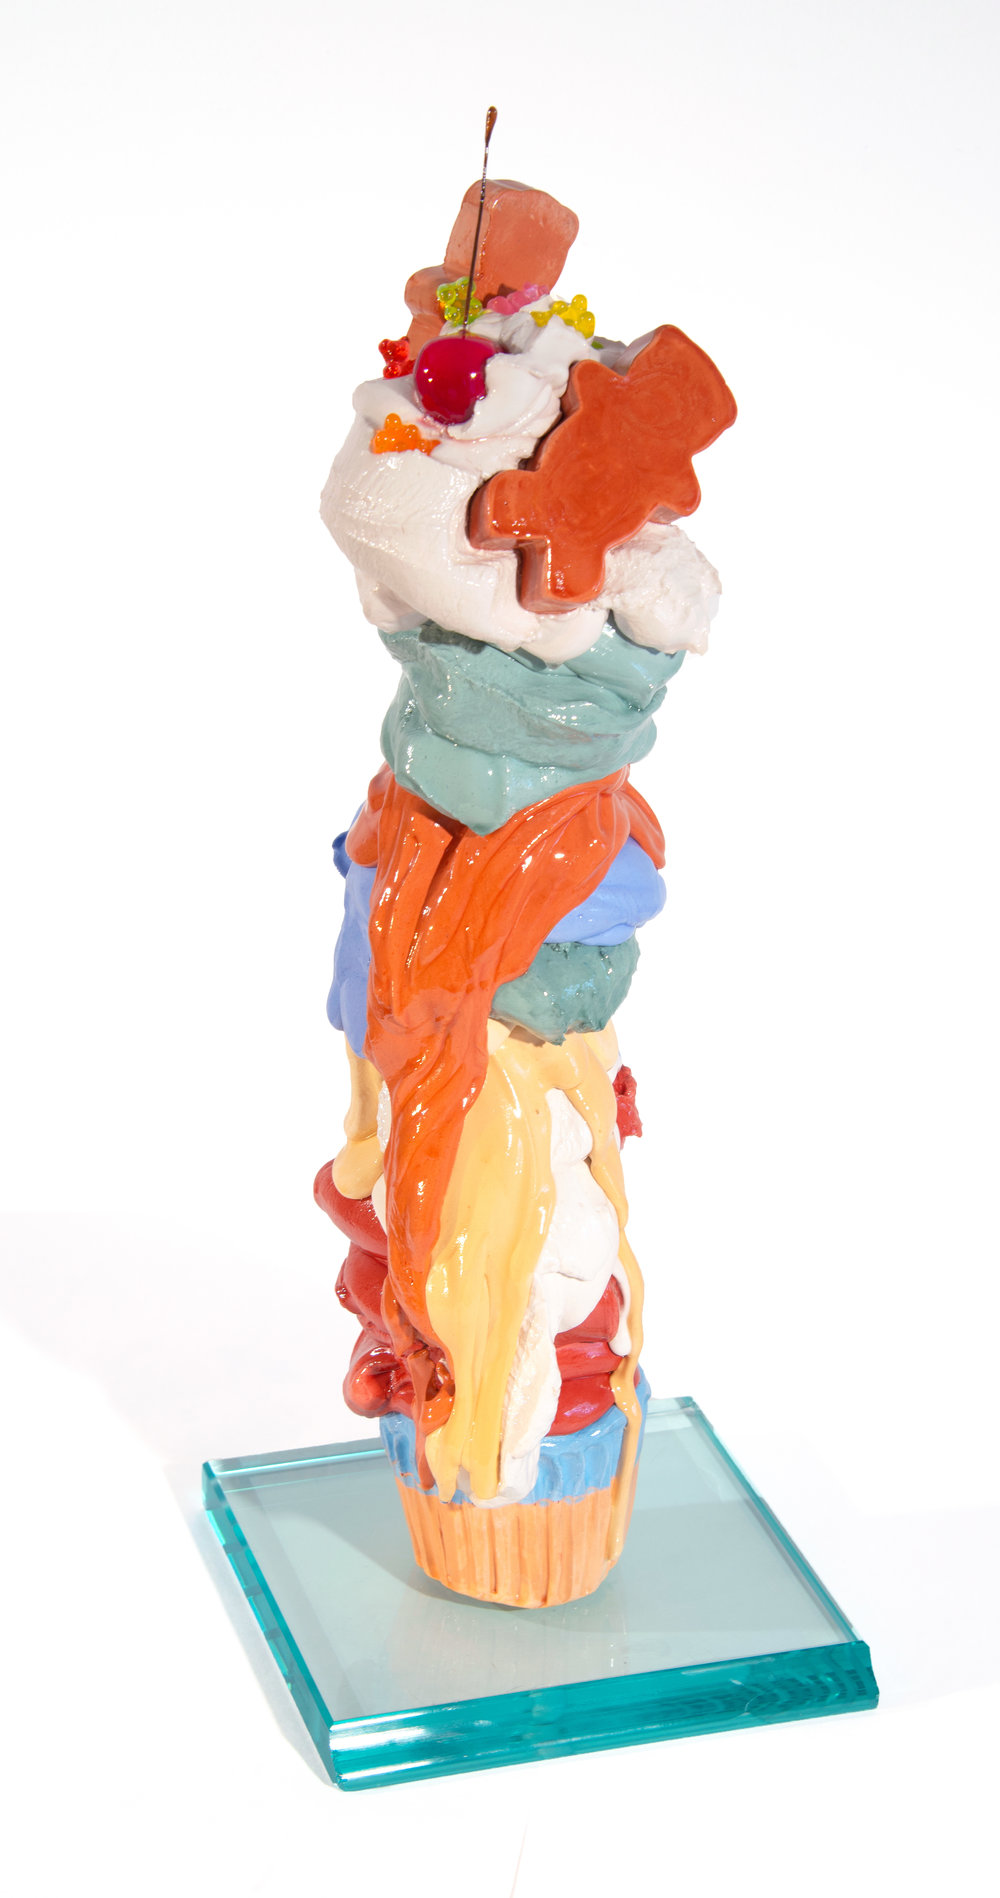 "Candy Land - 19"" x 7"" x 7""Cement, mix media, glass base$1100"